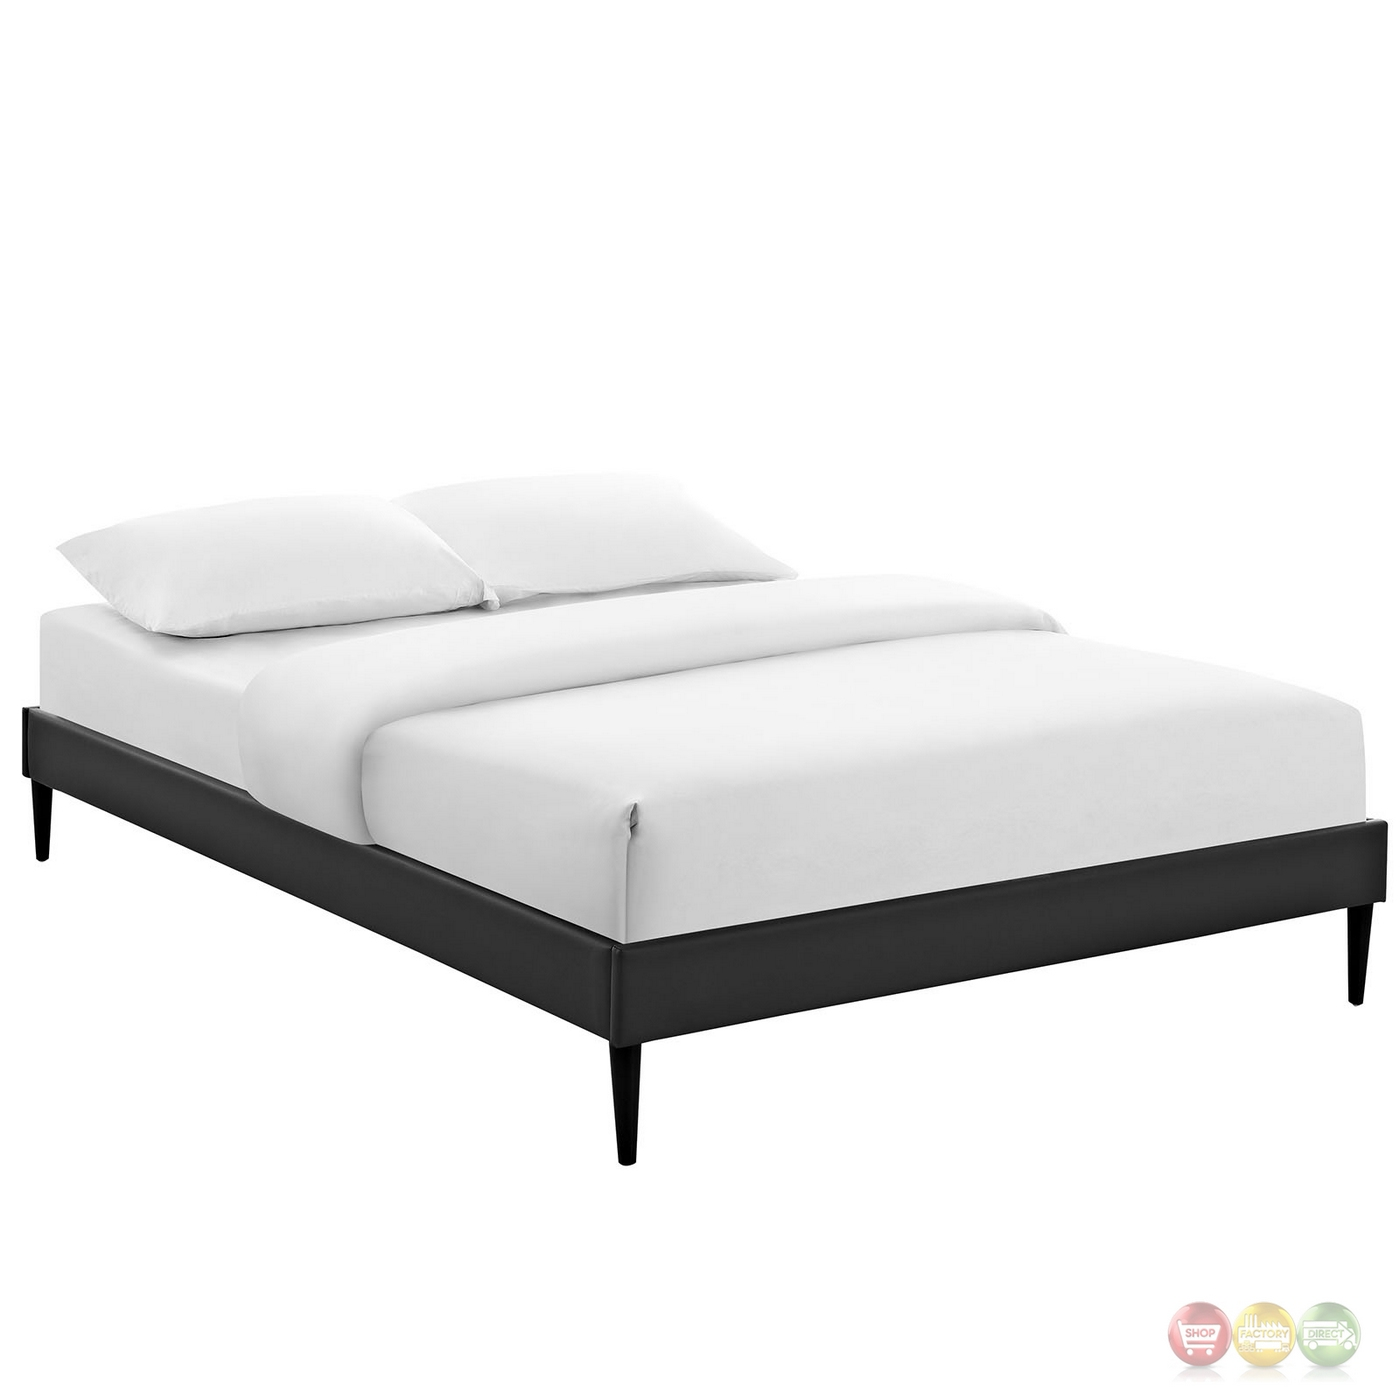 Sherry upholstered vinyl leather queen platform bed frame for Upholstered queen bed frame